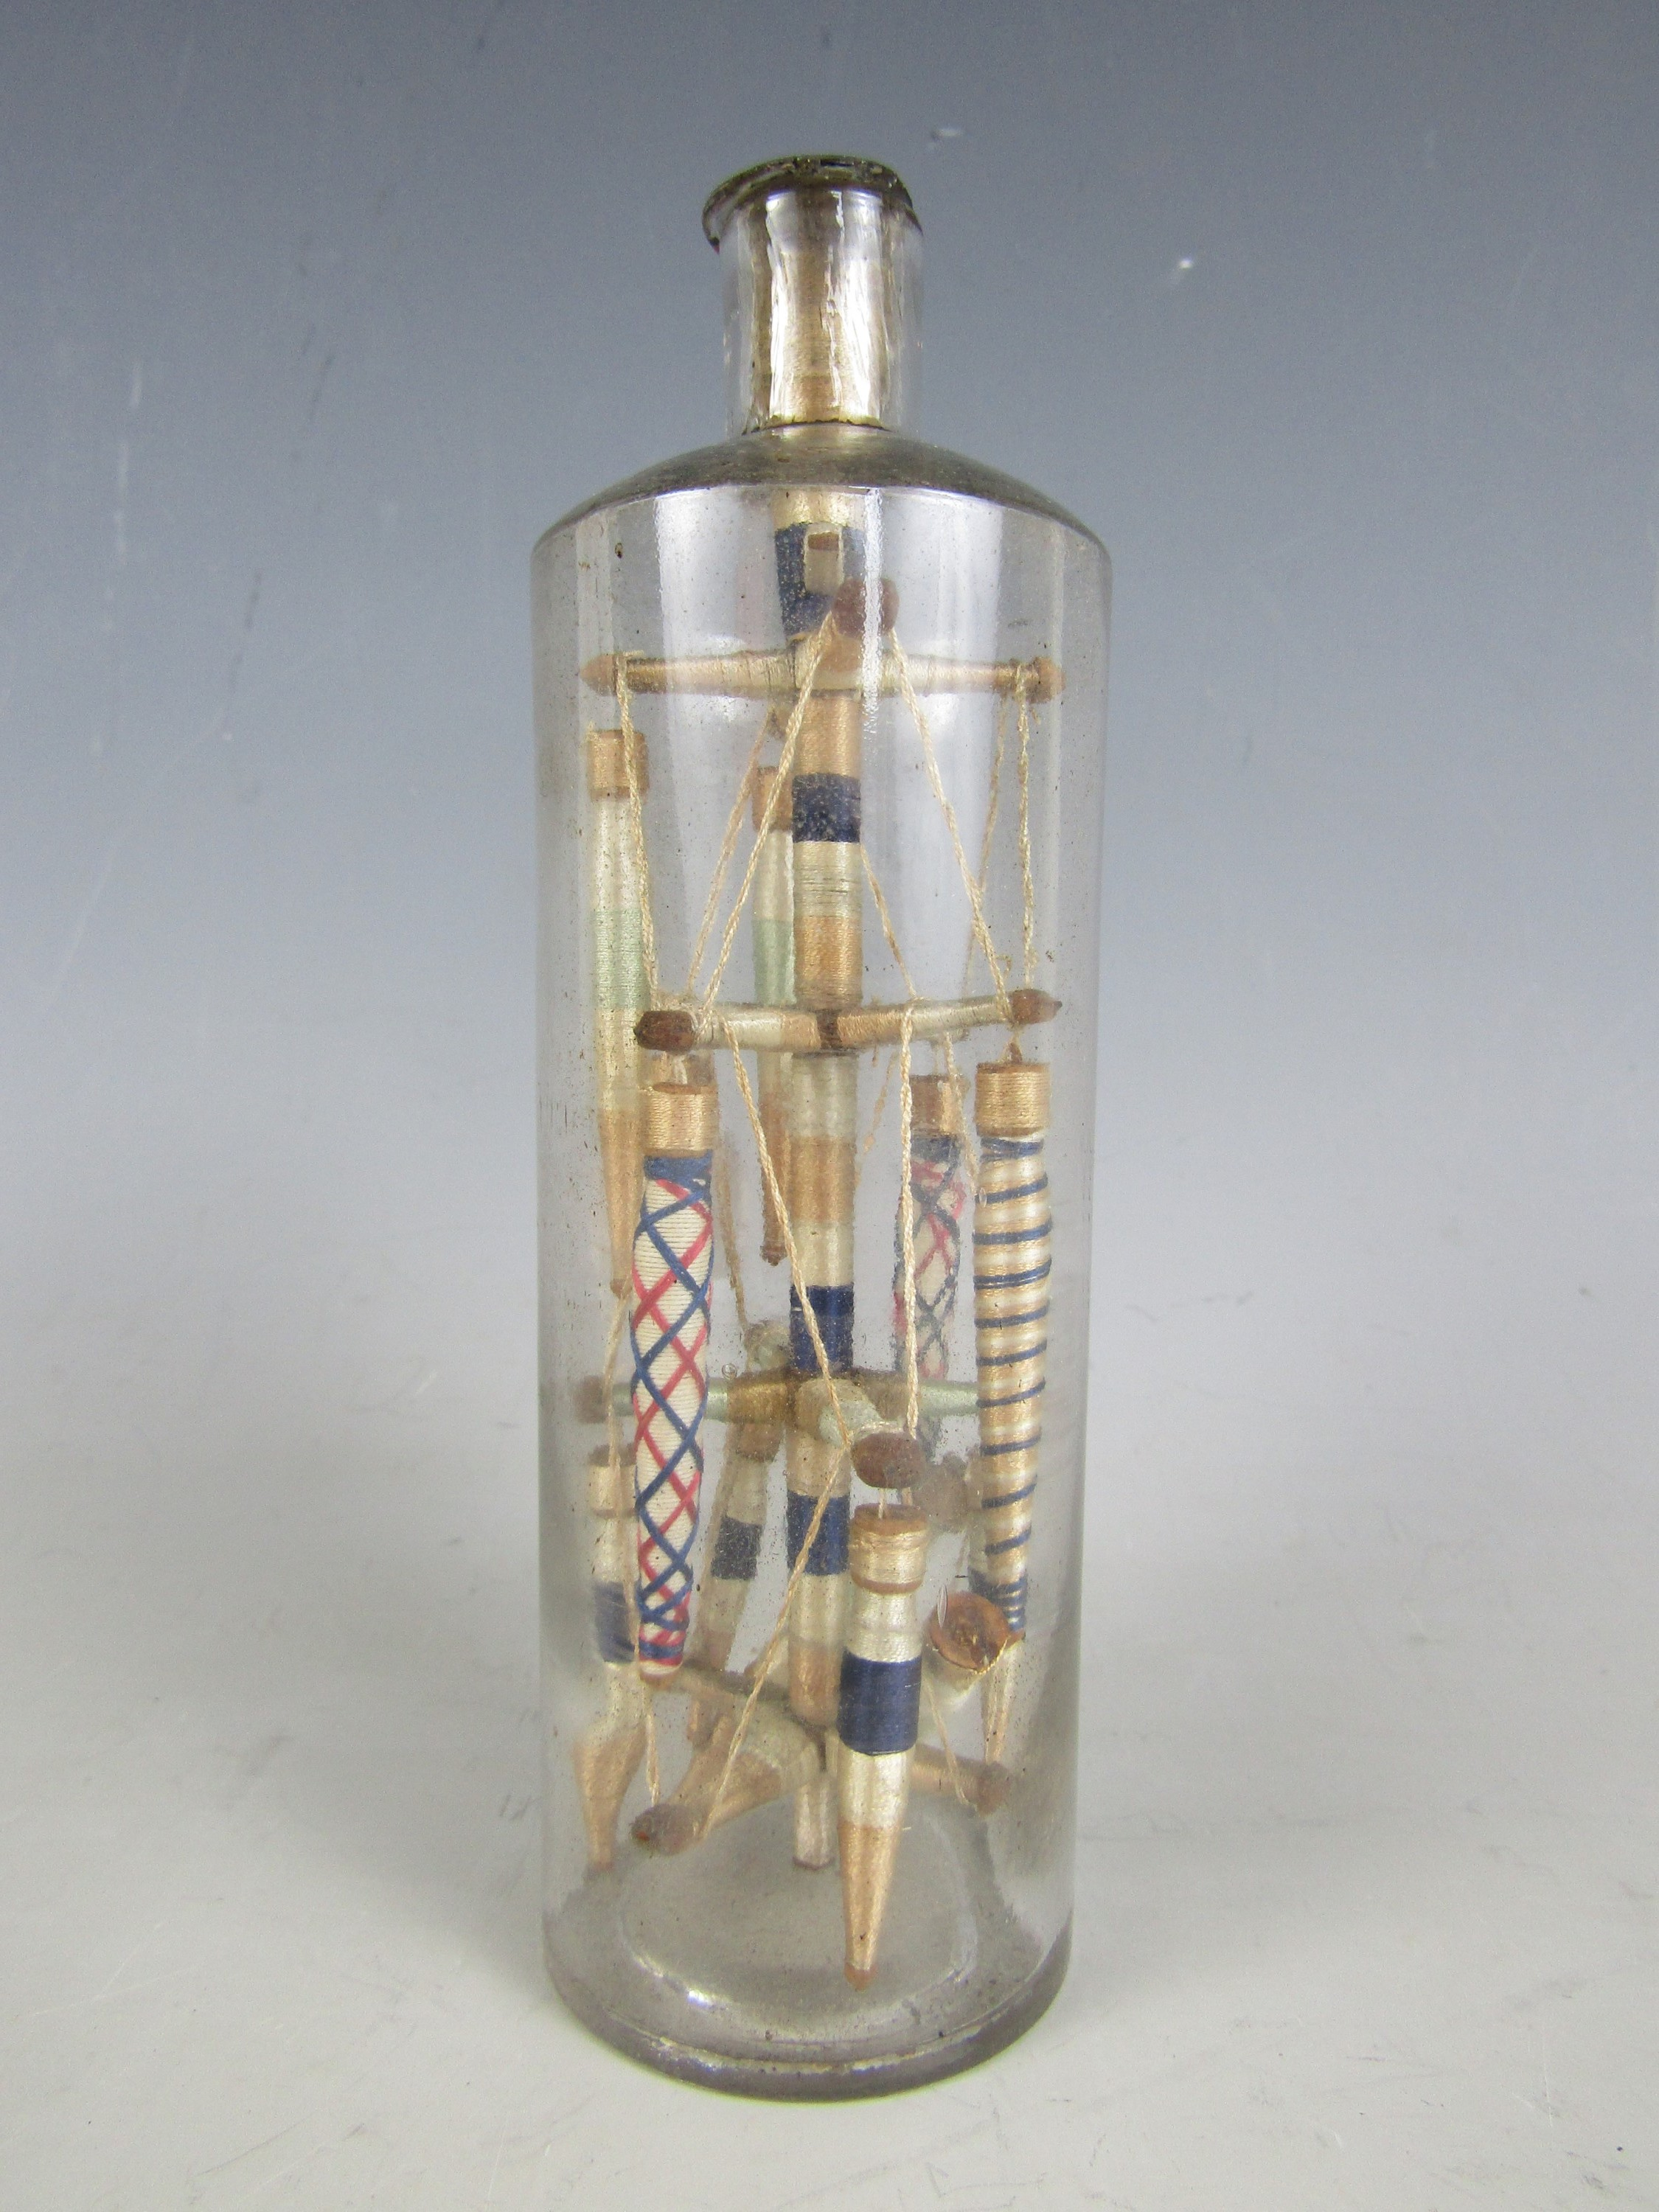 Lot 3 - A 19th Century folk art ornament of silk thread bobbins arranged in a glass bottle, 16 cm